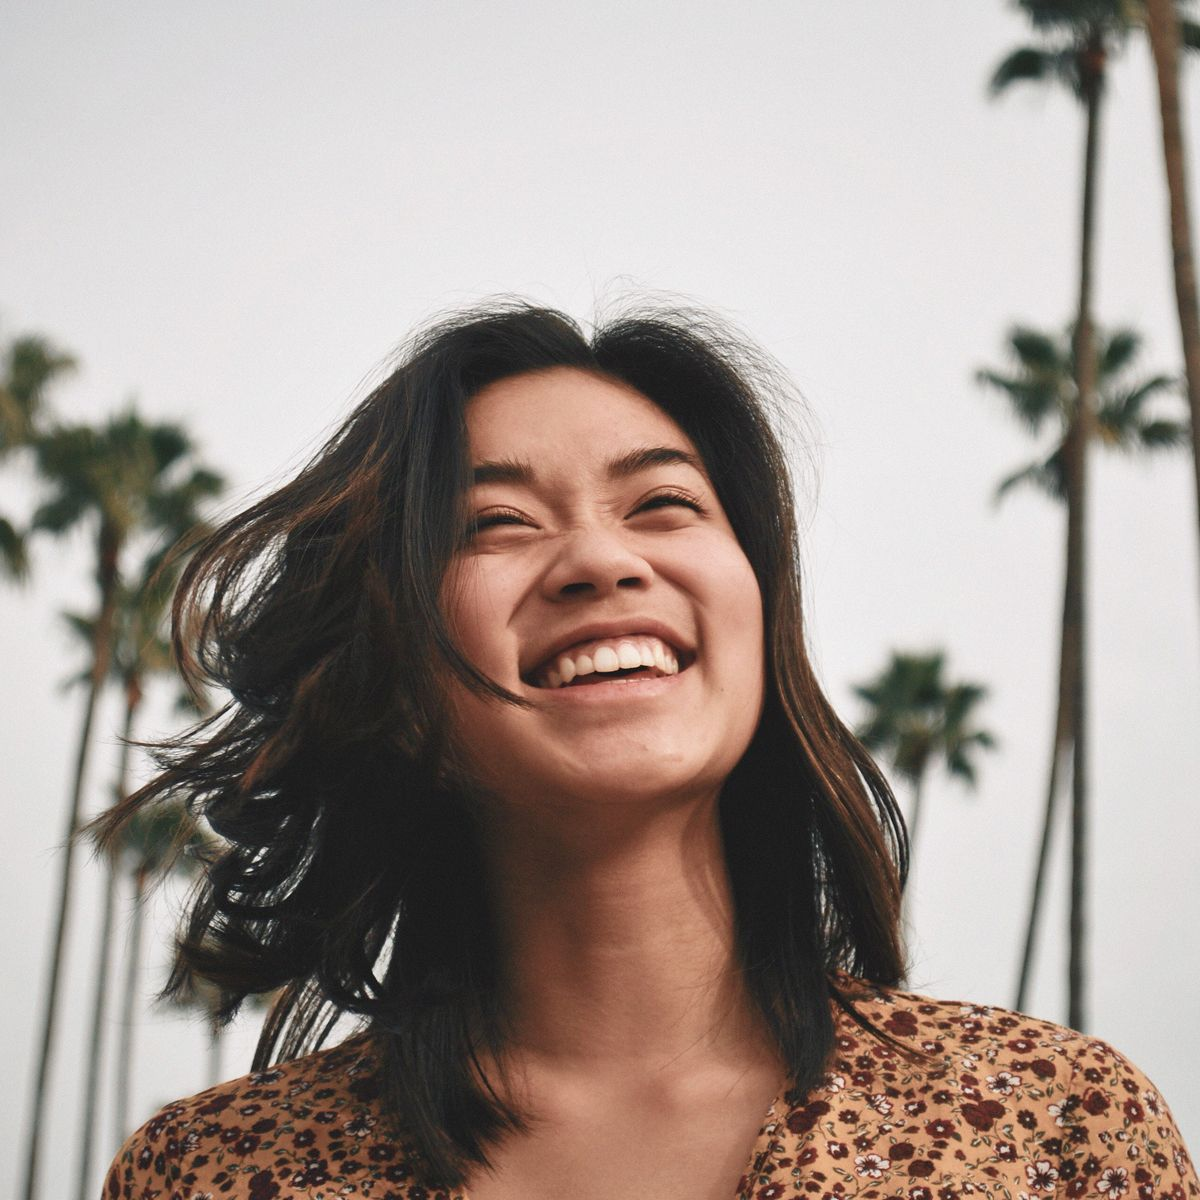 Woman smiling with palm trees in the background